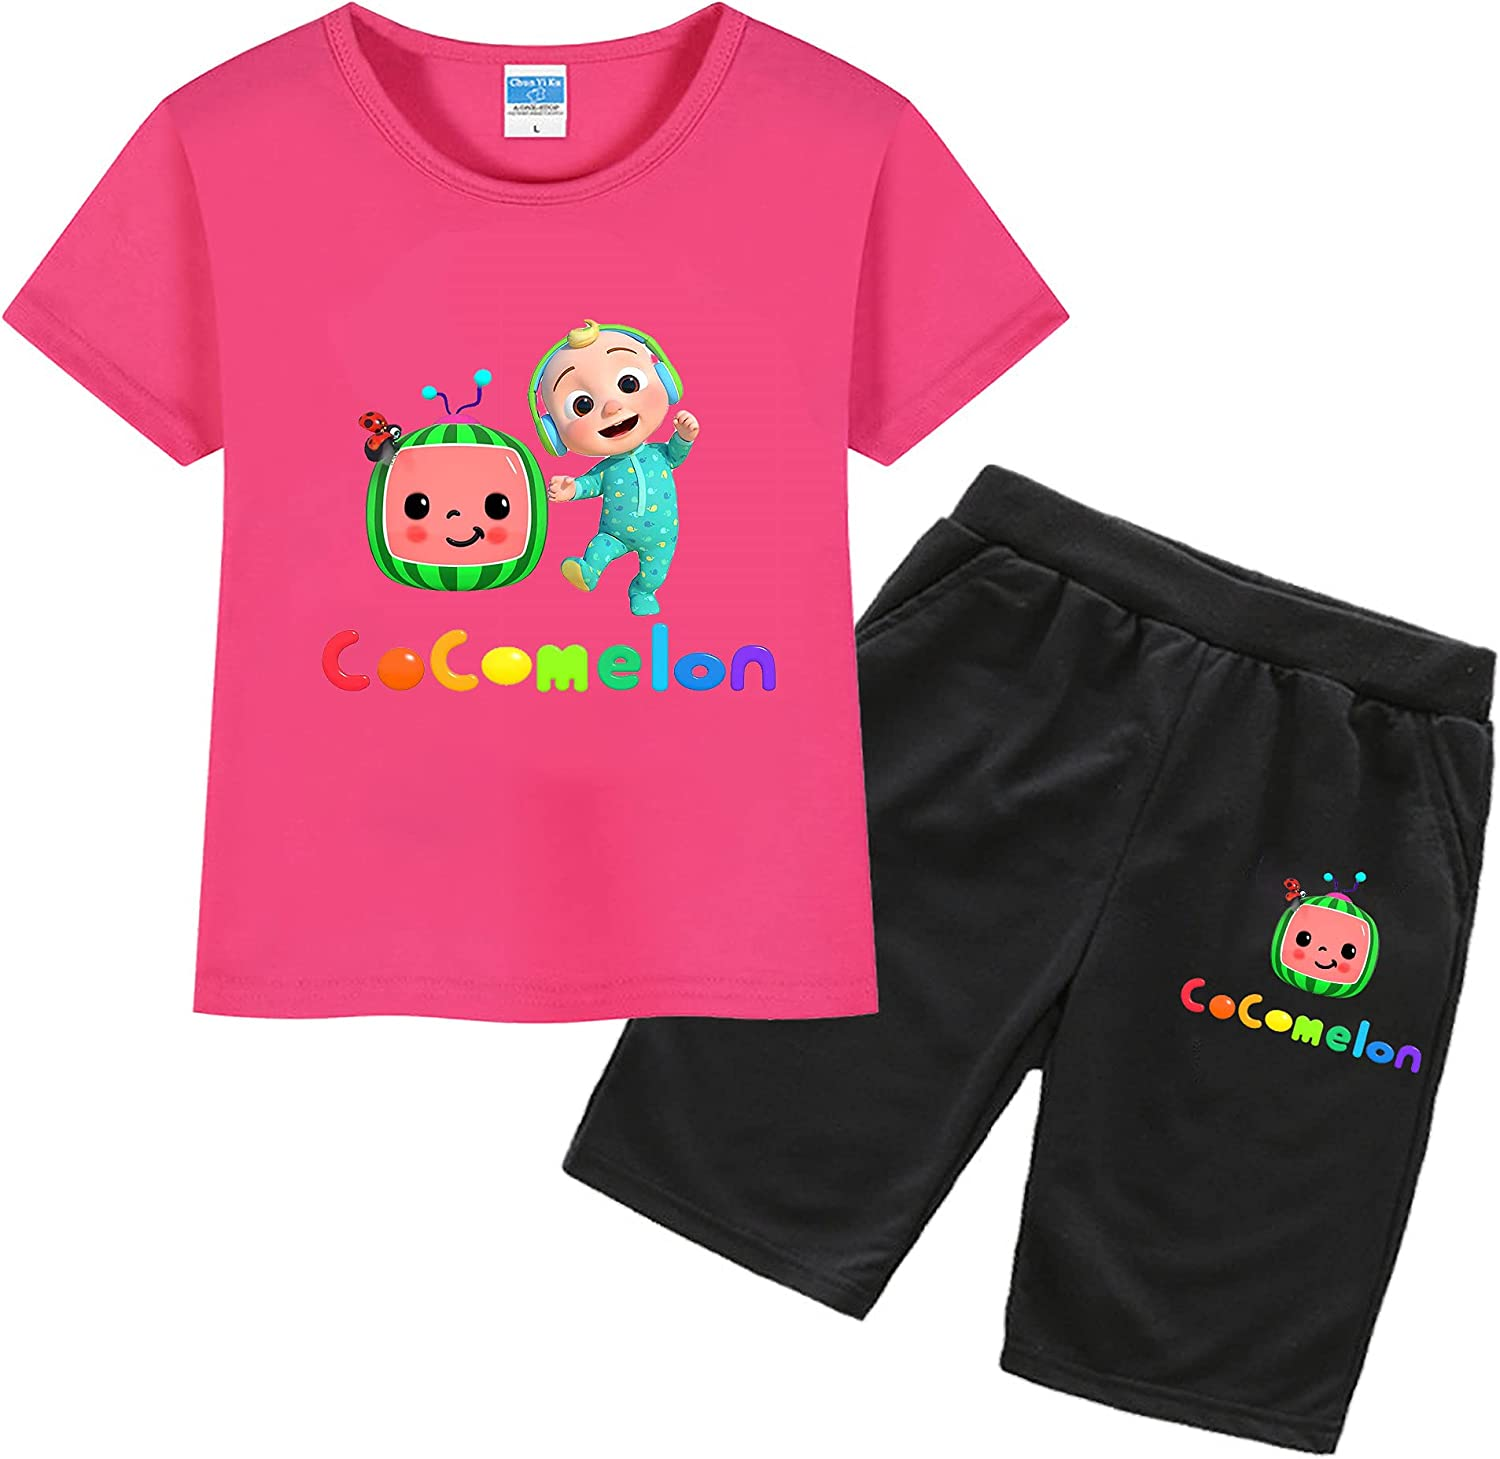 Toddler Boy/Girl Cocomelon Cotton Summer Short Sleeve T-Shirt and Shorts Outfit Set